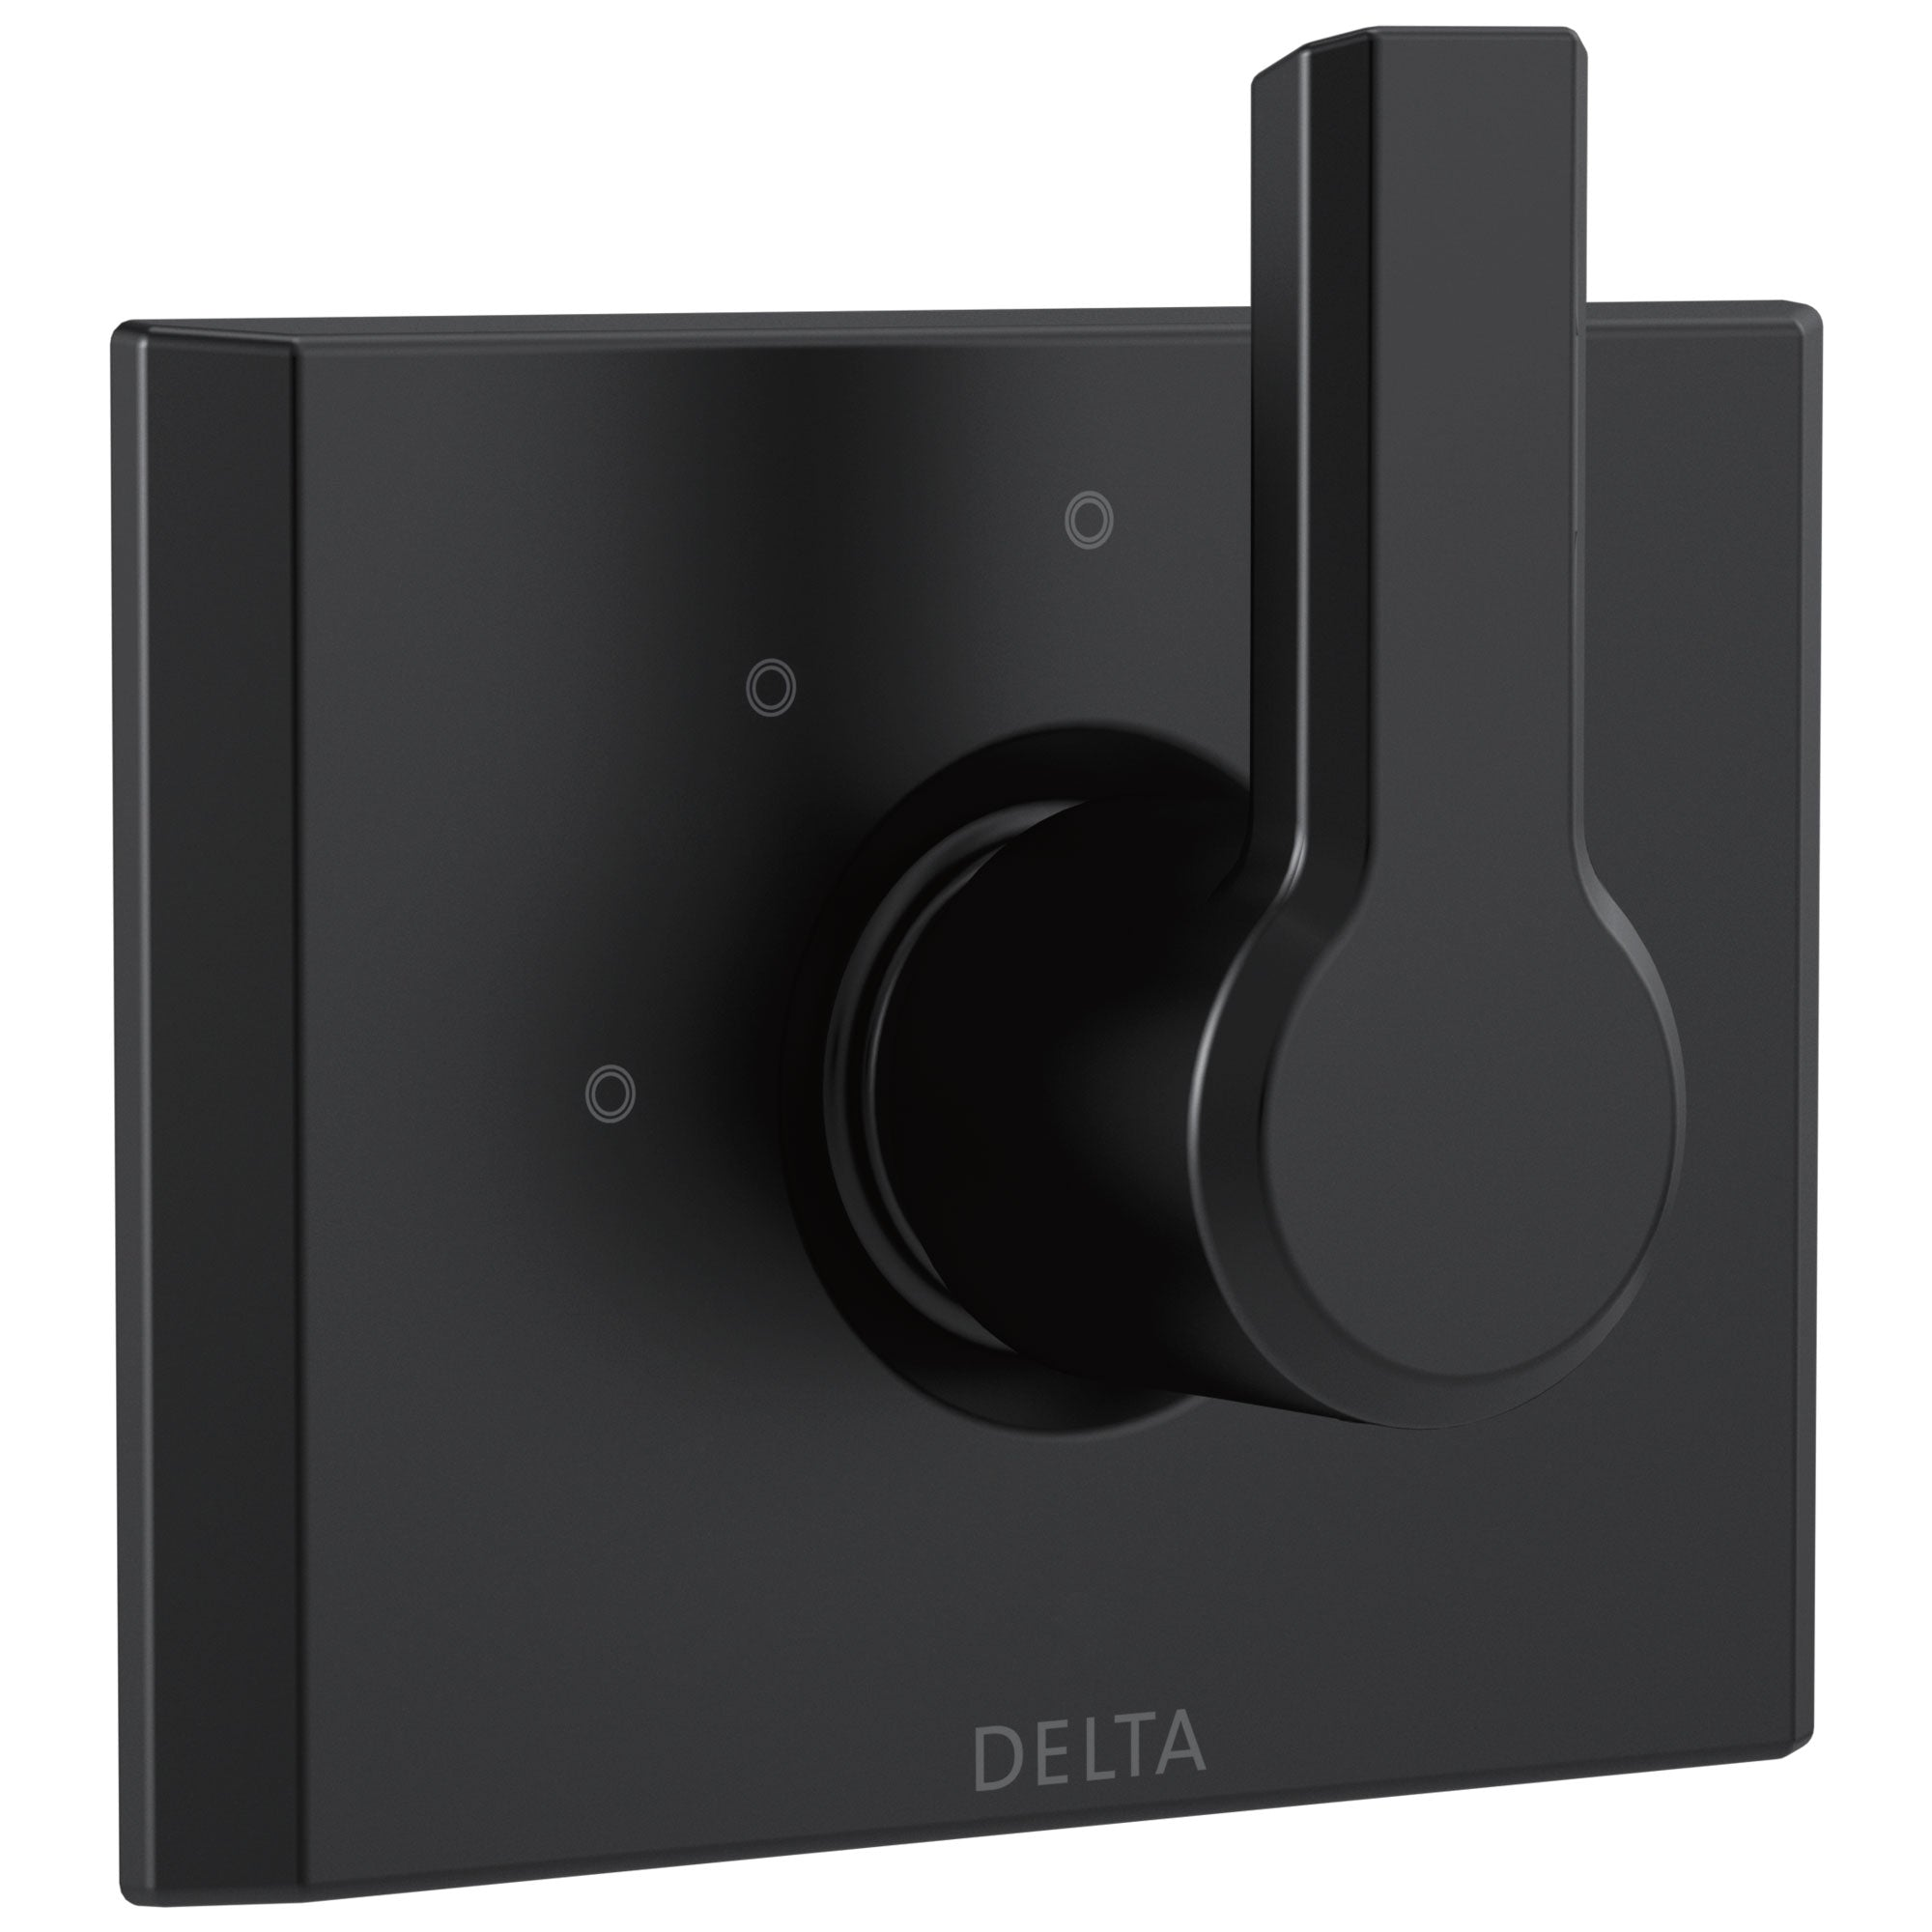 Delta Pivotal Modern Matte Black Finish 3-Setting 2 Outlet Port Shower System Diverter Includes Lever Handle and Rough-in Valve D3572V